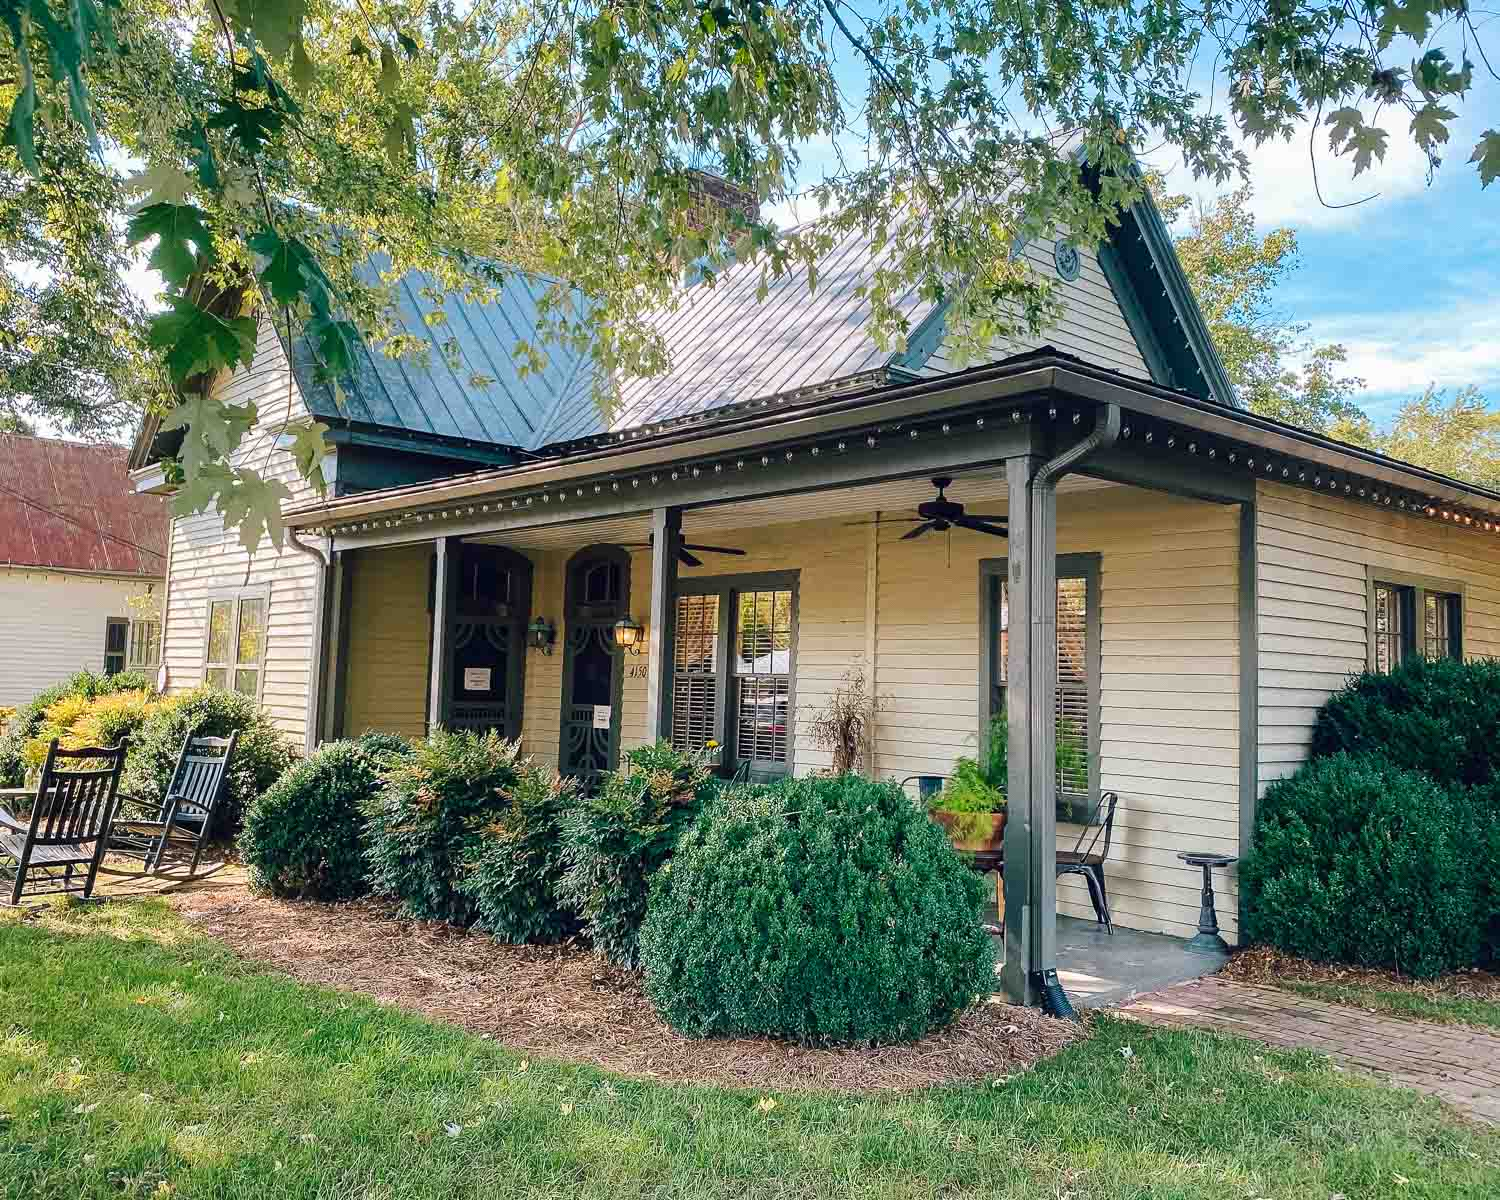 Historic home turned restaurant called 1892 in Leiper's Fork, Tennessee. There is one porch light on and a couple rocking chairs in the yard.